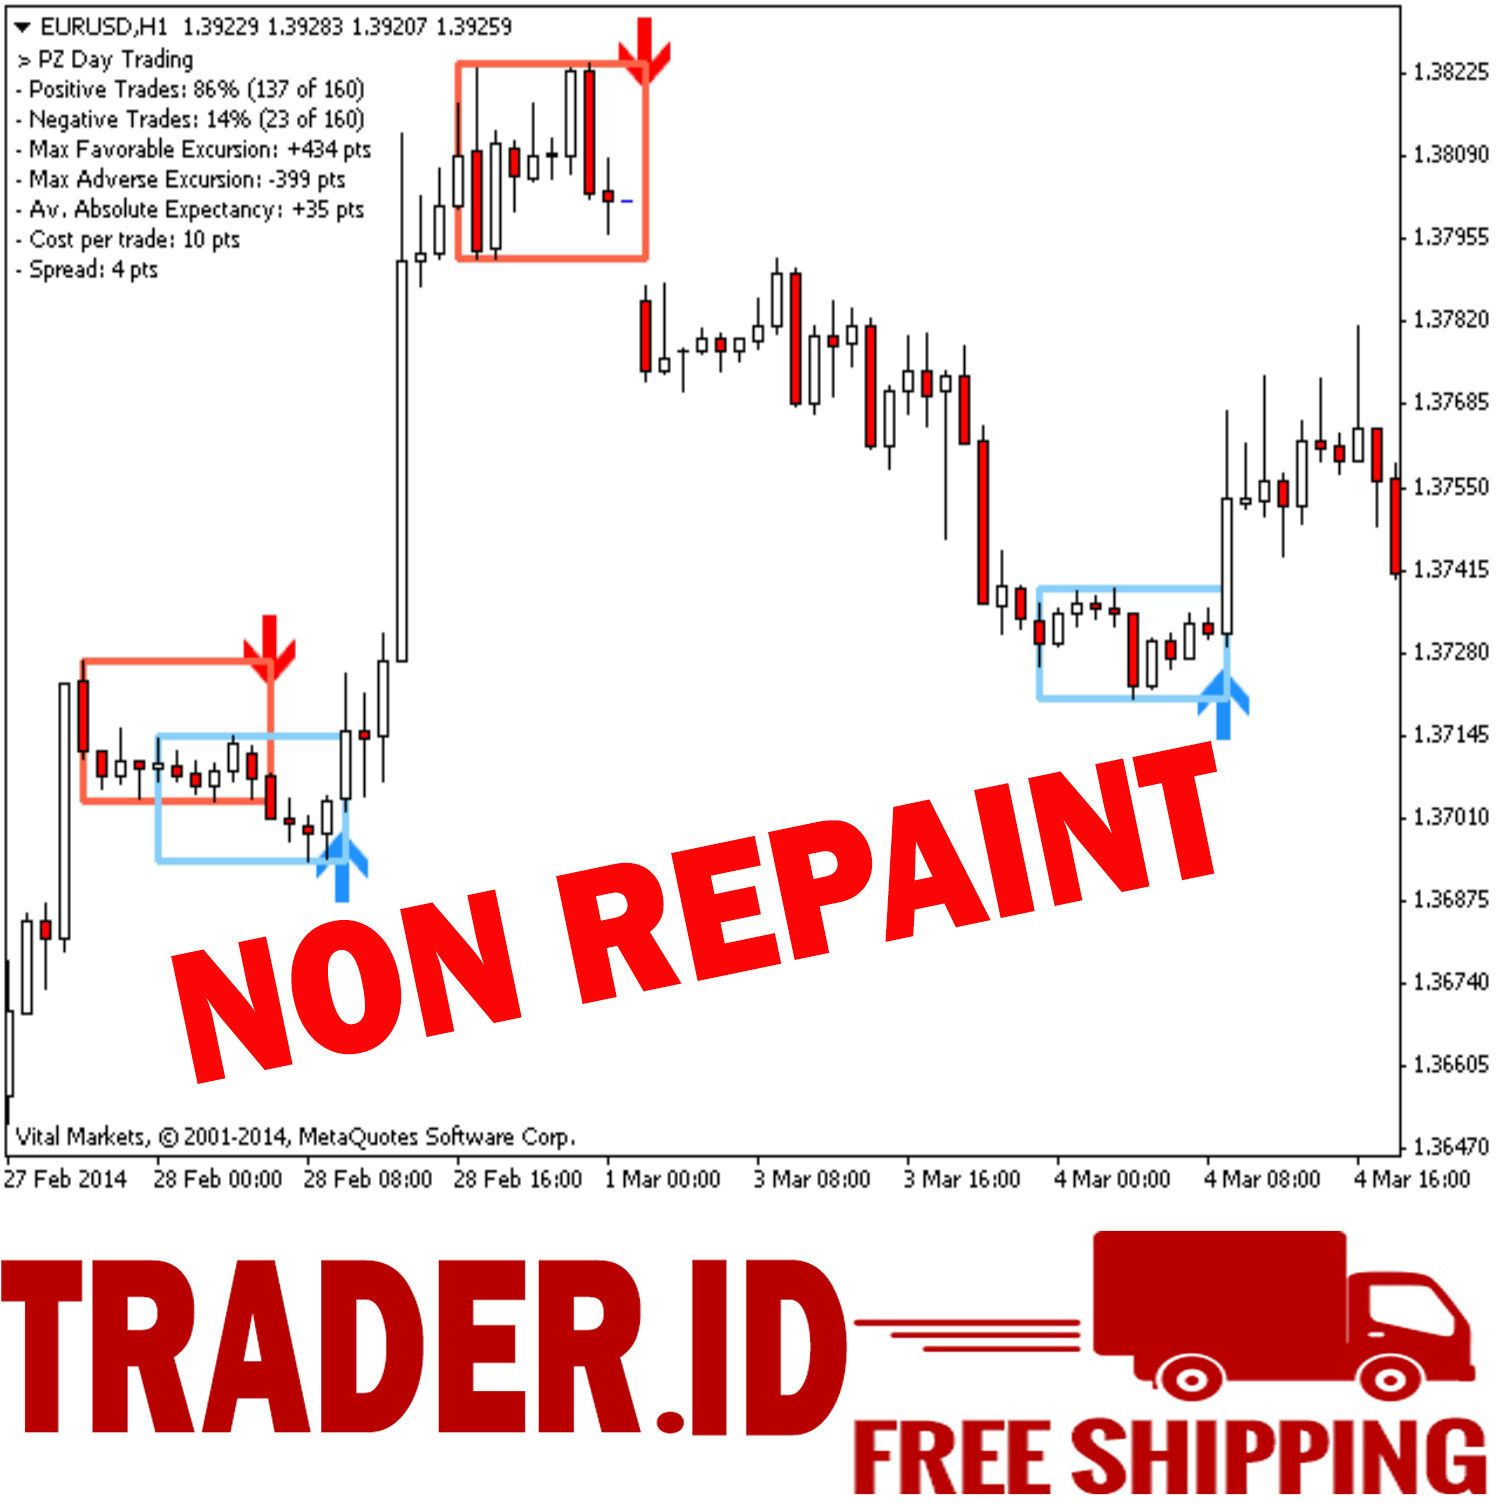 6 Pz Day Trading Forex Indicator For Mt4 Ebay Electronics